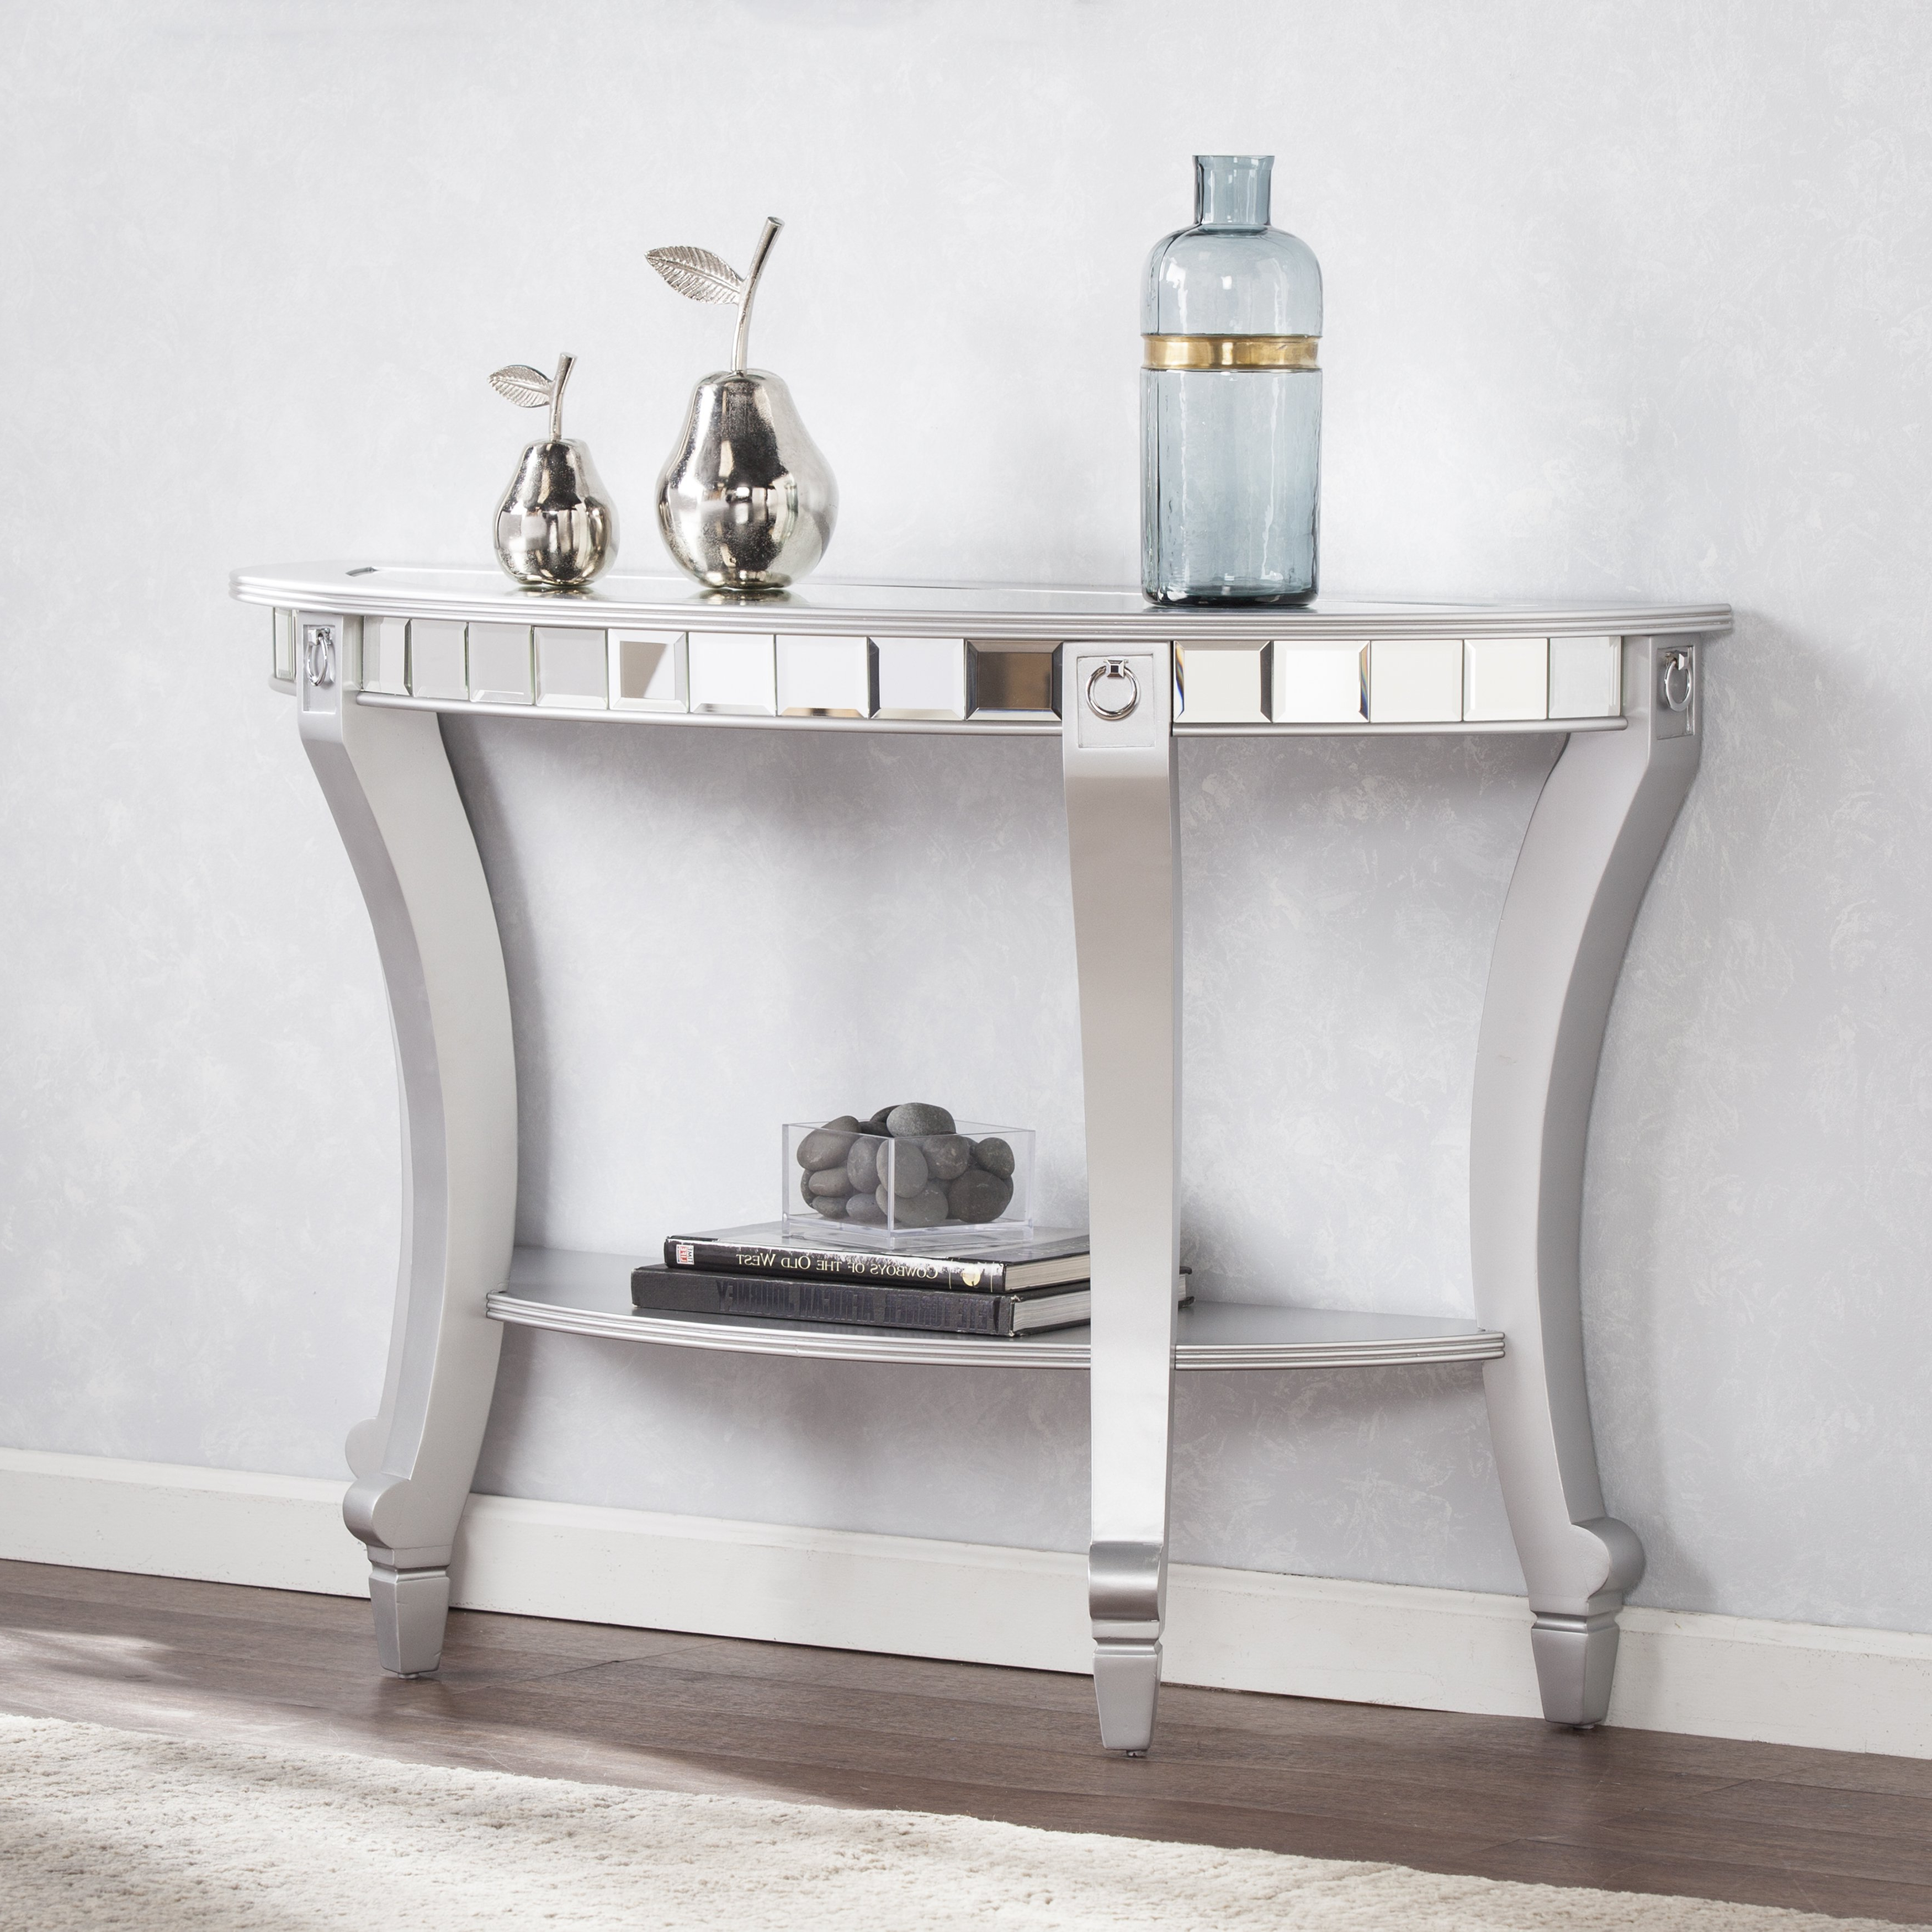 Silver Orchid Olivia Glam Mirrored Demilune Console Table – Matte Intended For Ventana Display Console Tables (View 15 of 20)